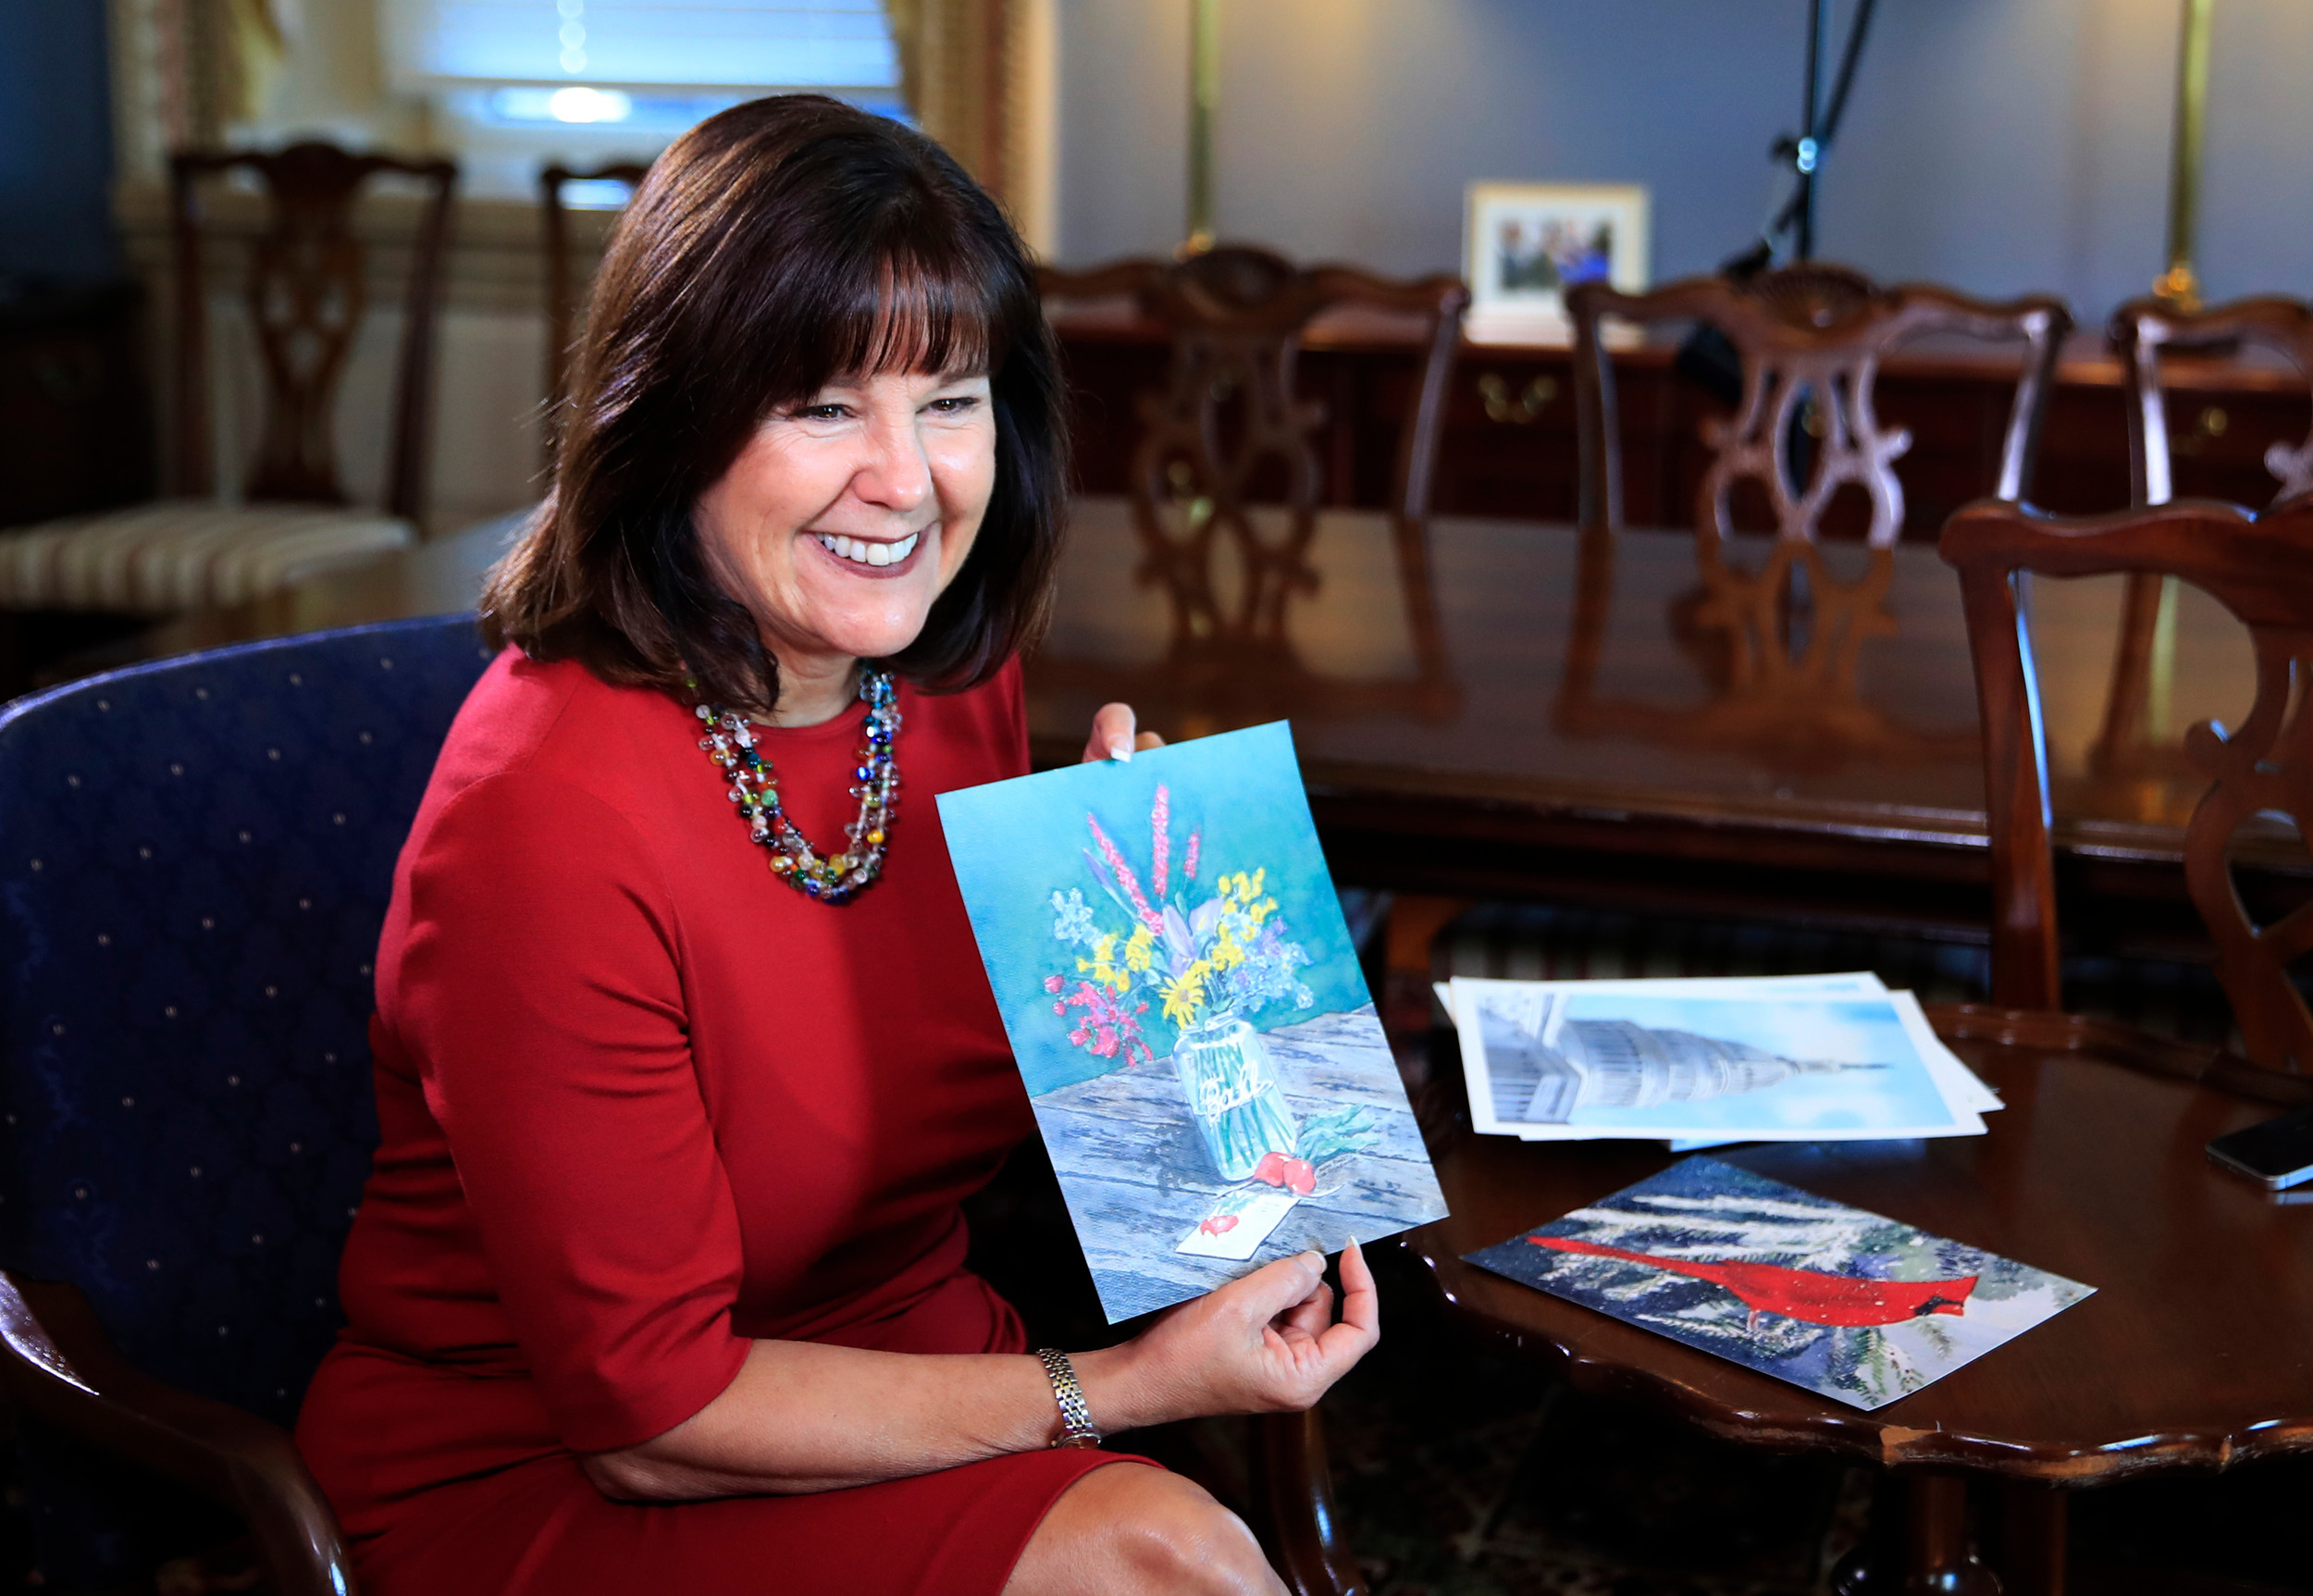 Karen Pence, wife of Vice President Mike Pence, shows her artwork during an interview Tuesday in her office at the Eisenhower Executive Office Building at the White House complex in Washington, D.C. Pence is using her platform as the vice president's wife to raise awareness about art therapy, a mental health field she's been passionate about for a decade.